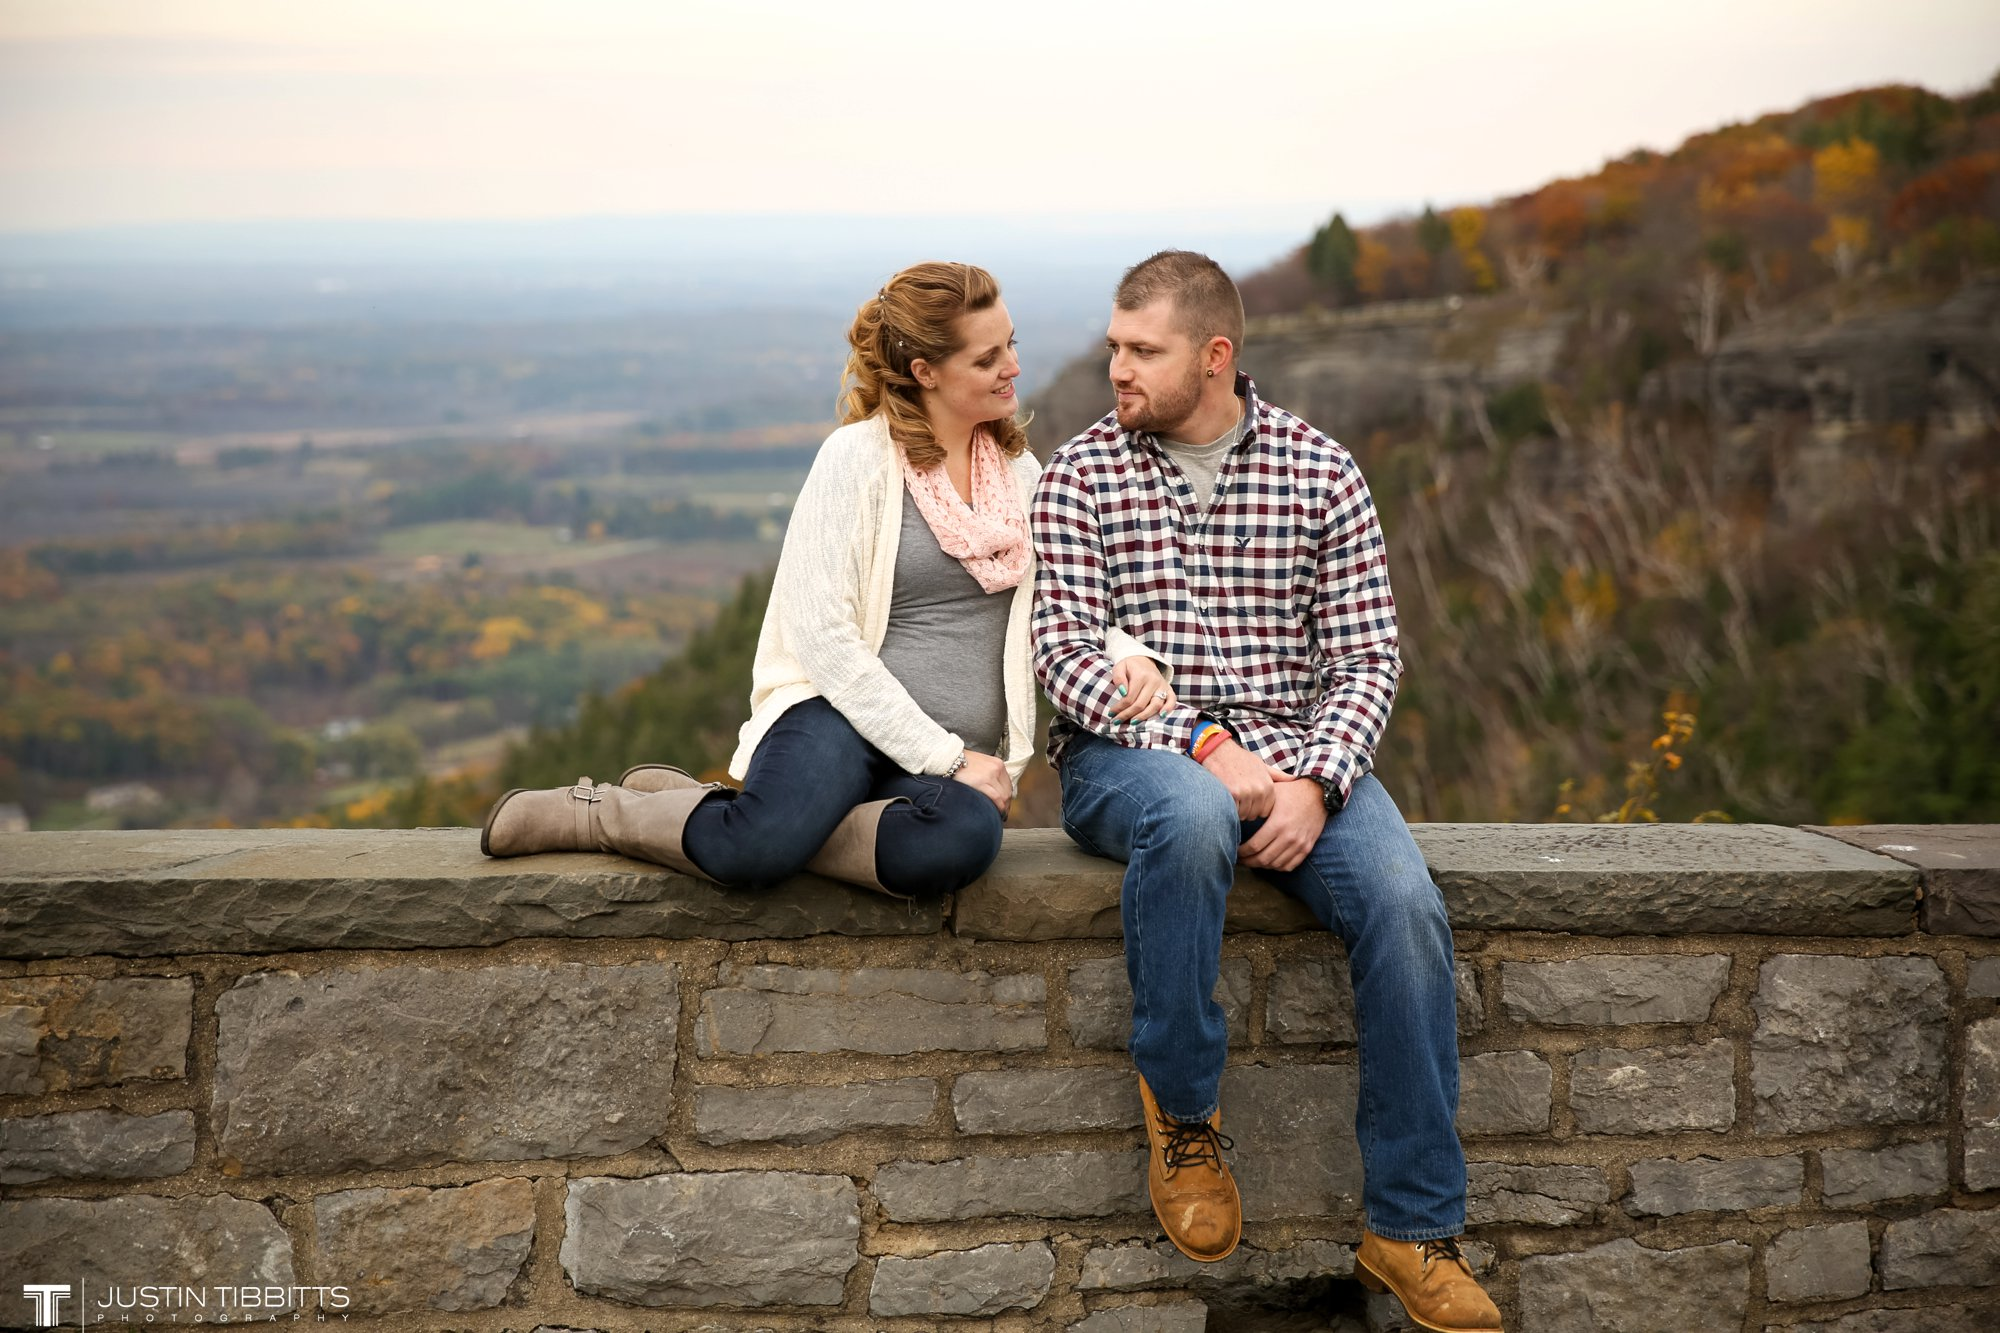 Justin Tibbitts Photography Ashlee and Steves Thatcher Park, New York Engagement Shoot-125